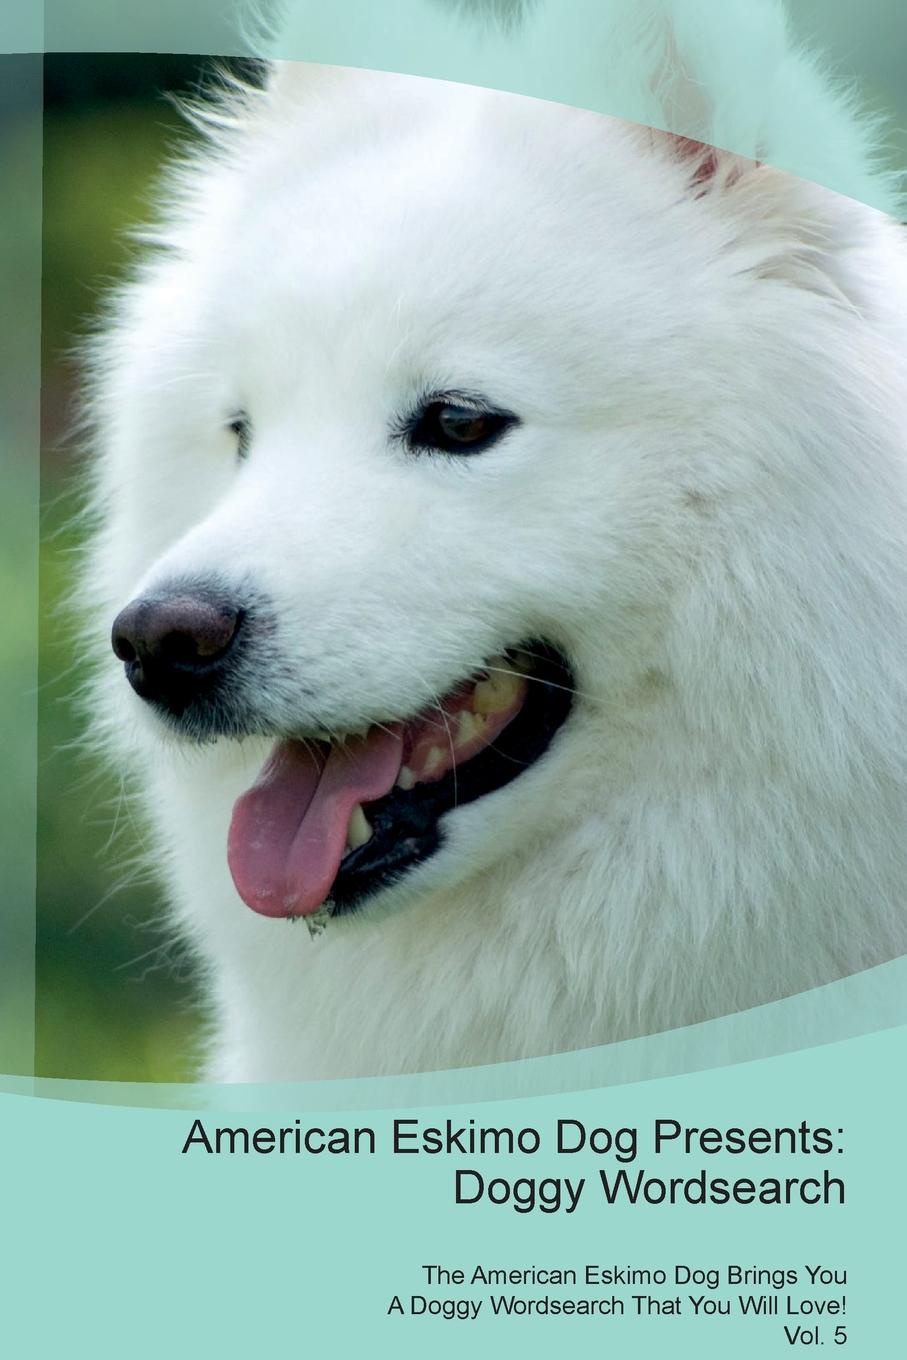 Doggy Puzzles American Eskimo Dog Presents. Wordsearch The Brings You A That Will Love! Vol. 5